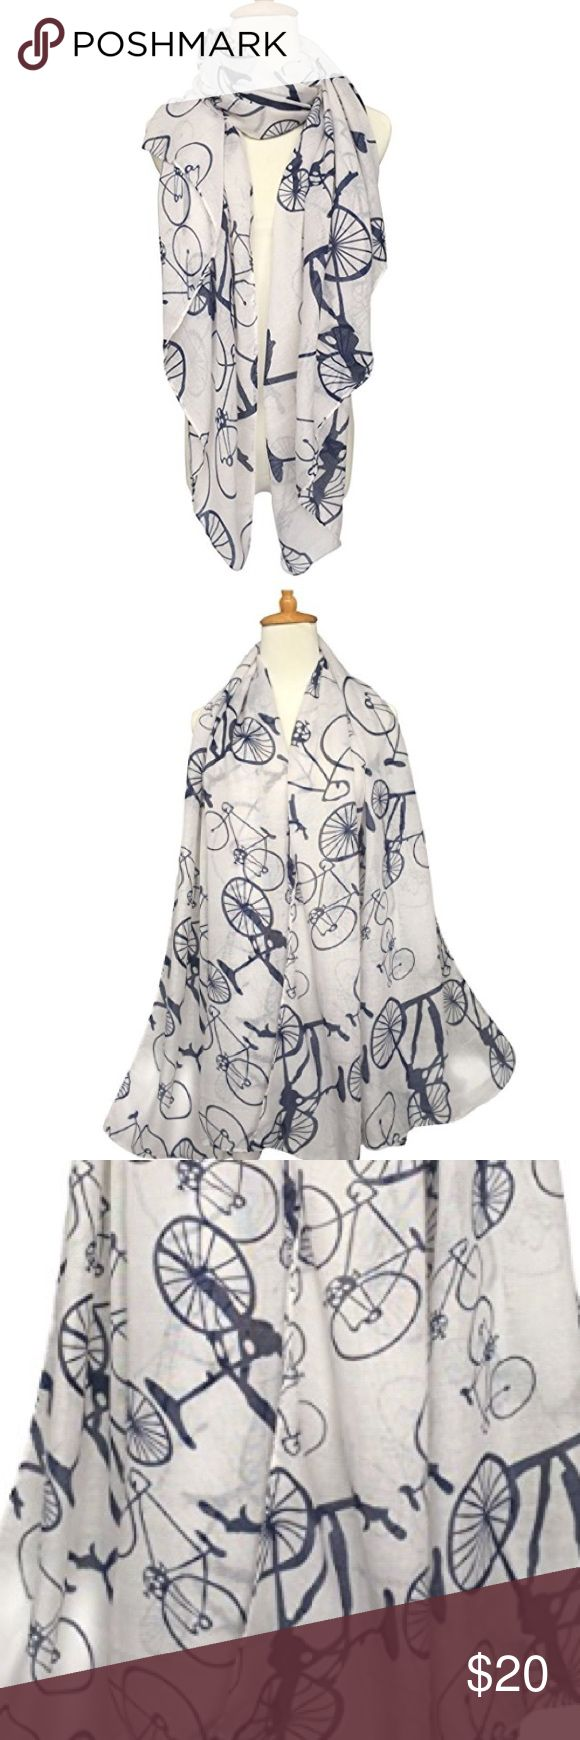 NWOT Bicycle Print Scarf Brand new. Accessories Scarves & Wraps